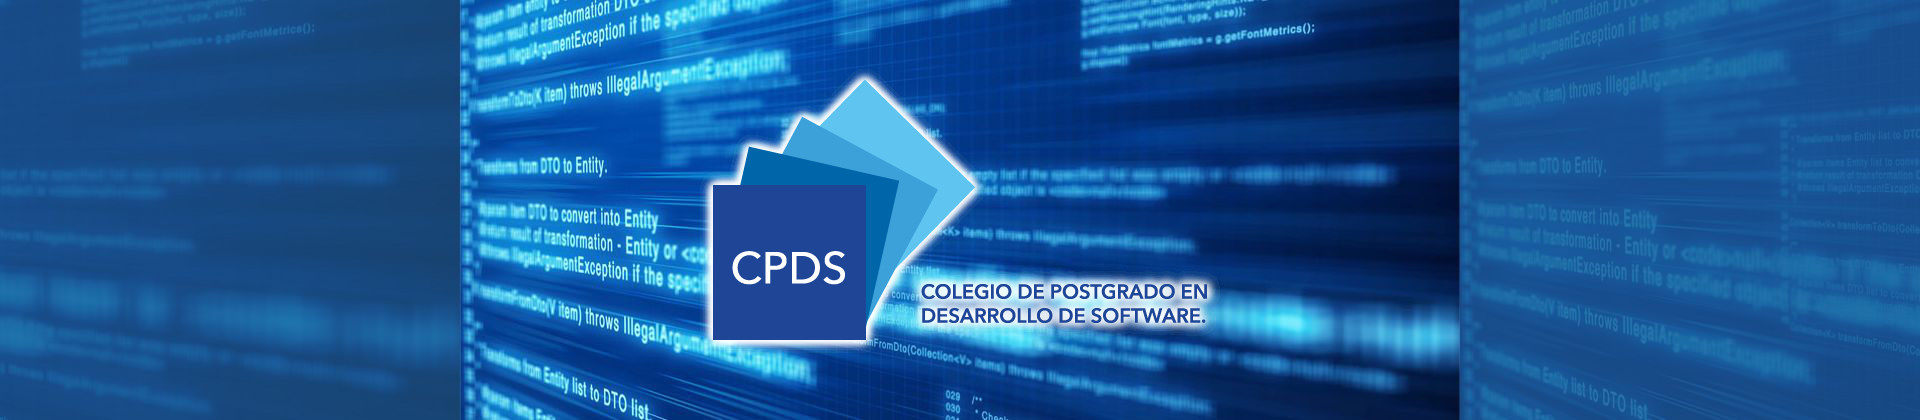 CPDS